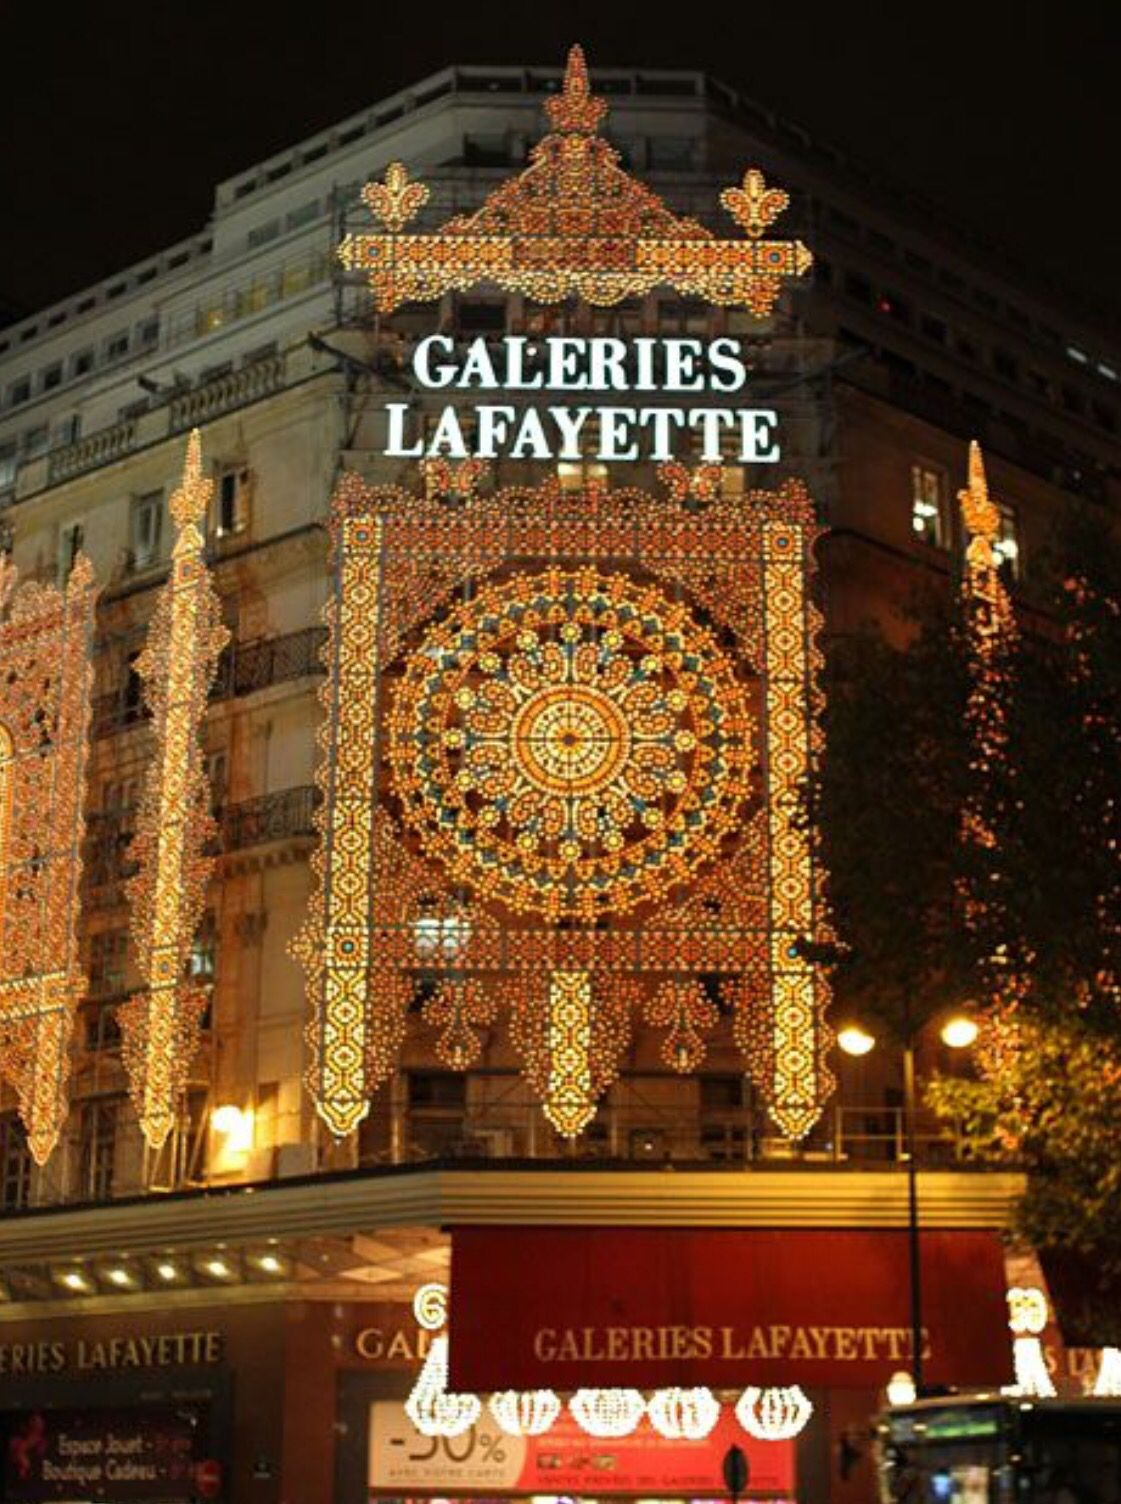 Day 2.  Head up to galleries Lafayette the beautiful shopping centre (the Parisian harrods)